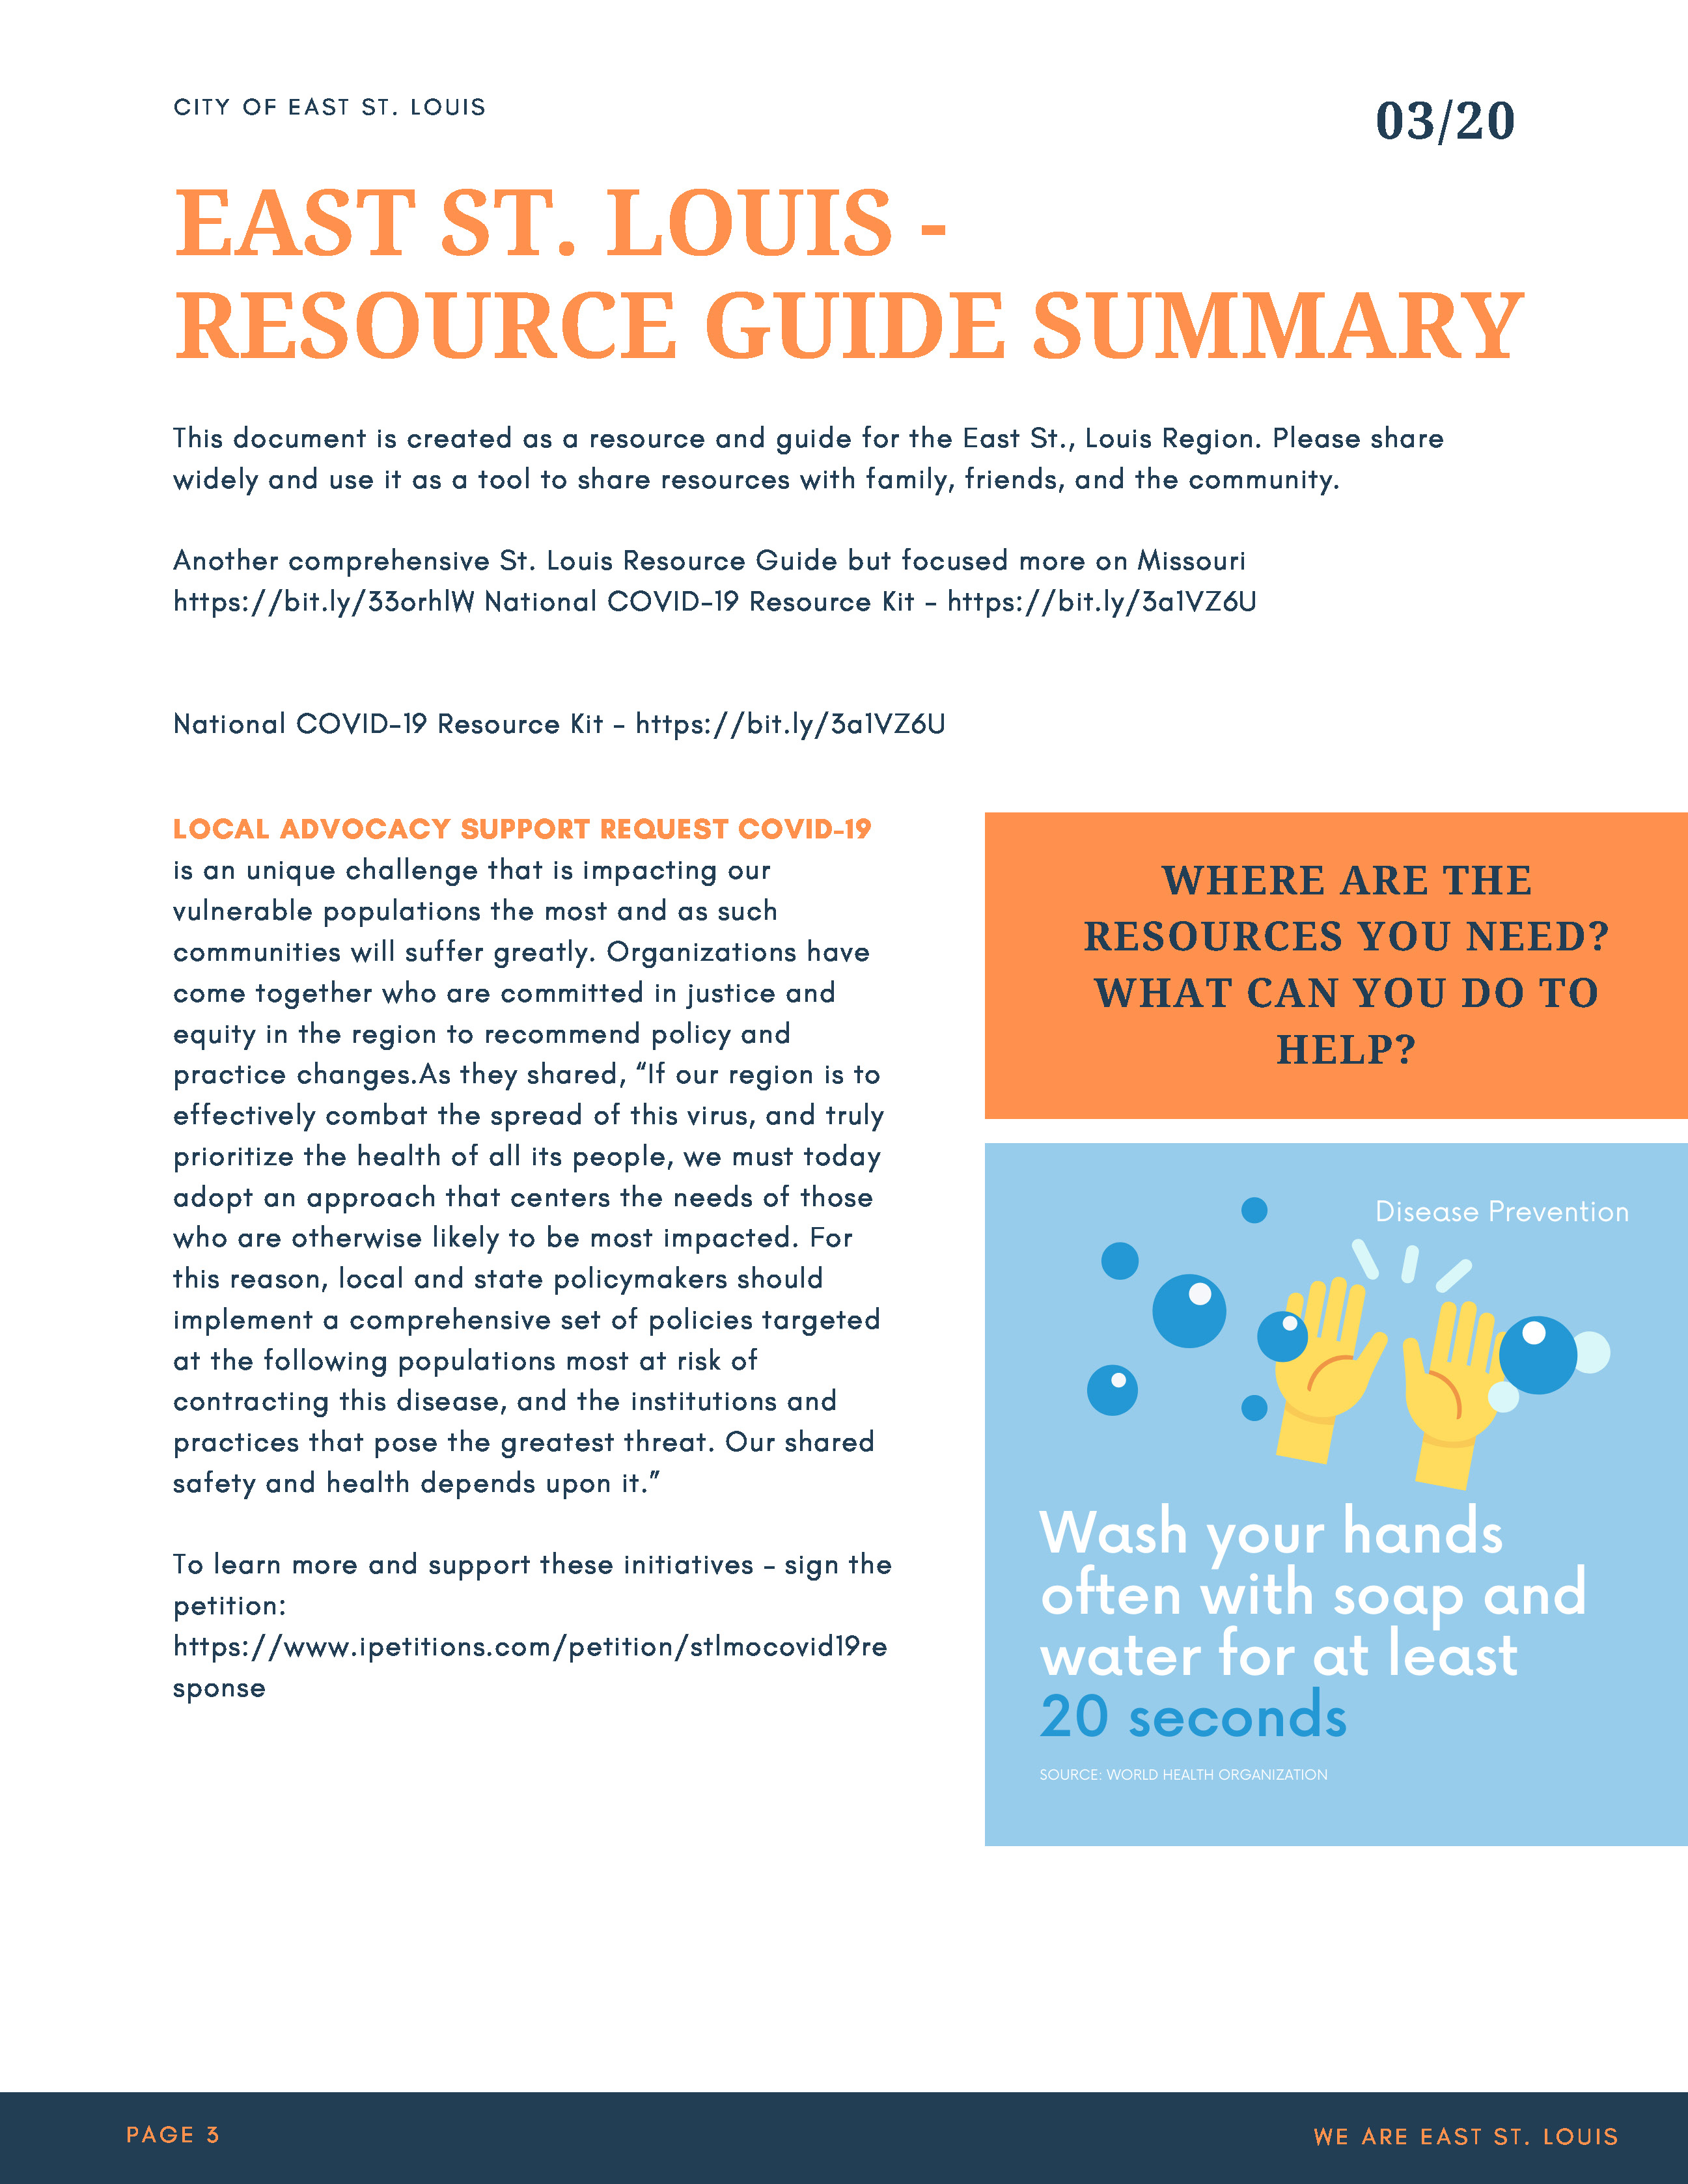 EAST ST LOUIS - COVID-19 RESOURCE GUIDE Update_Page_03